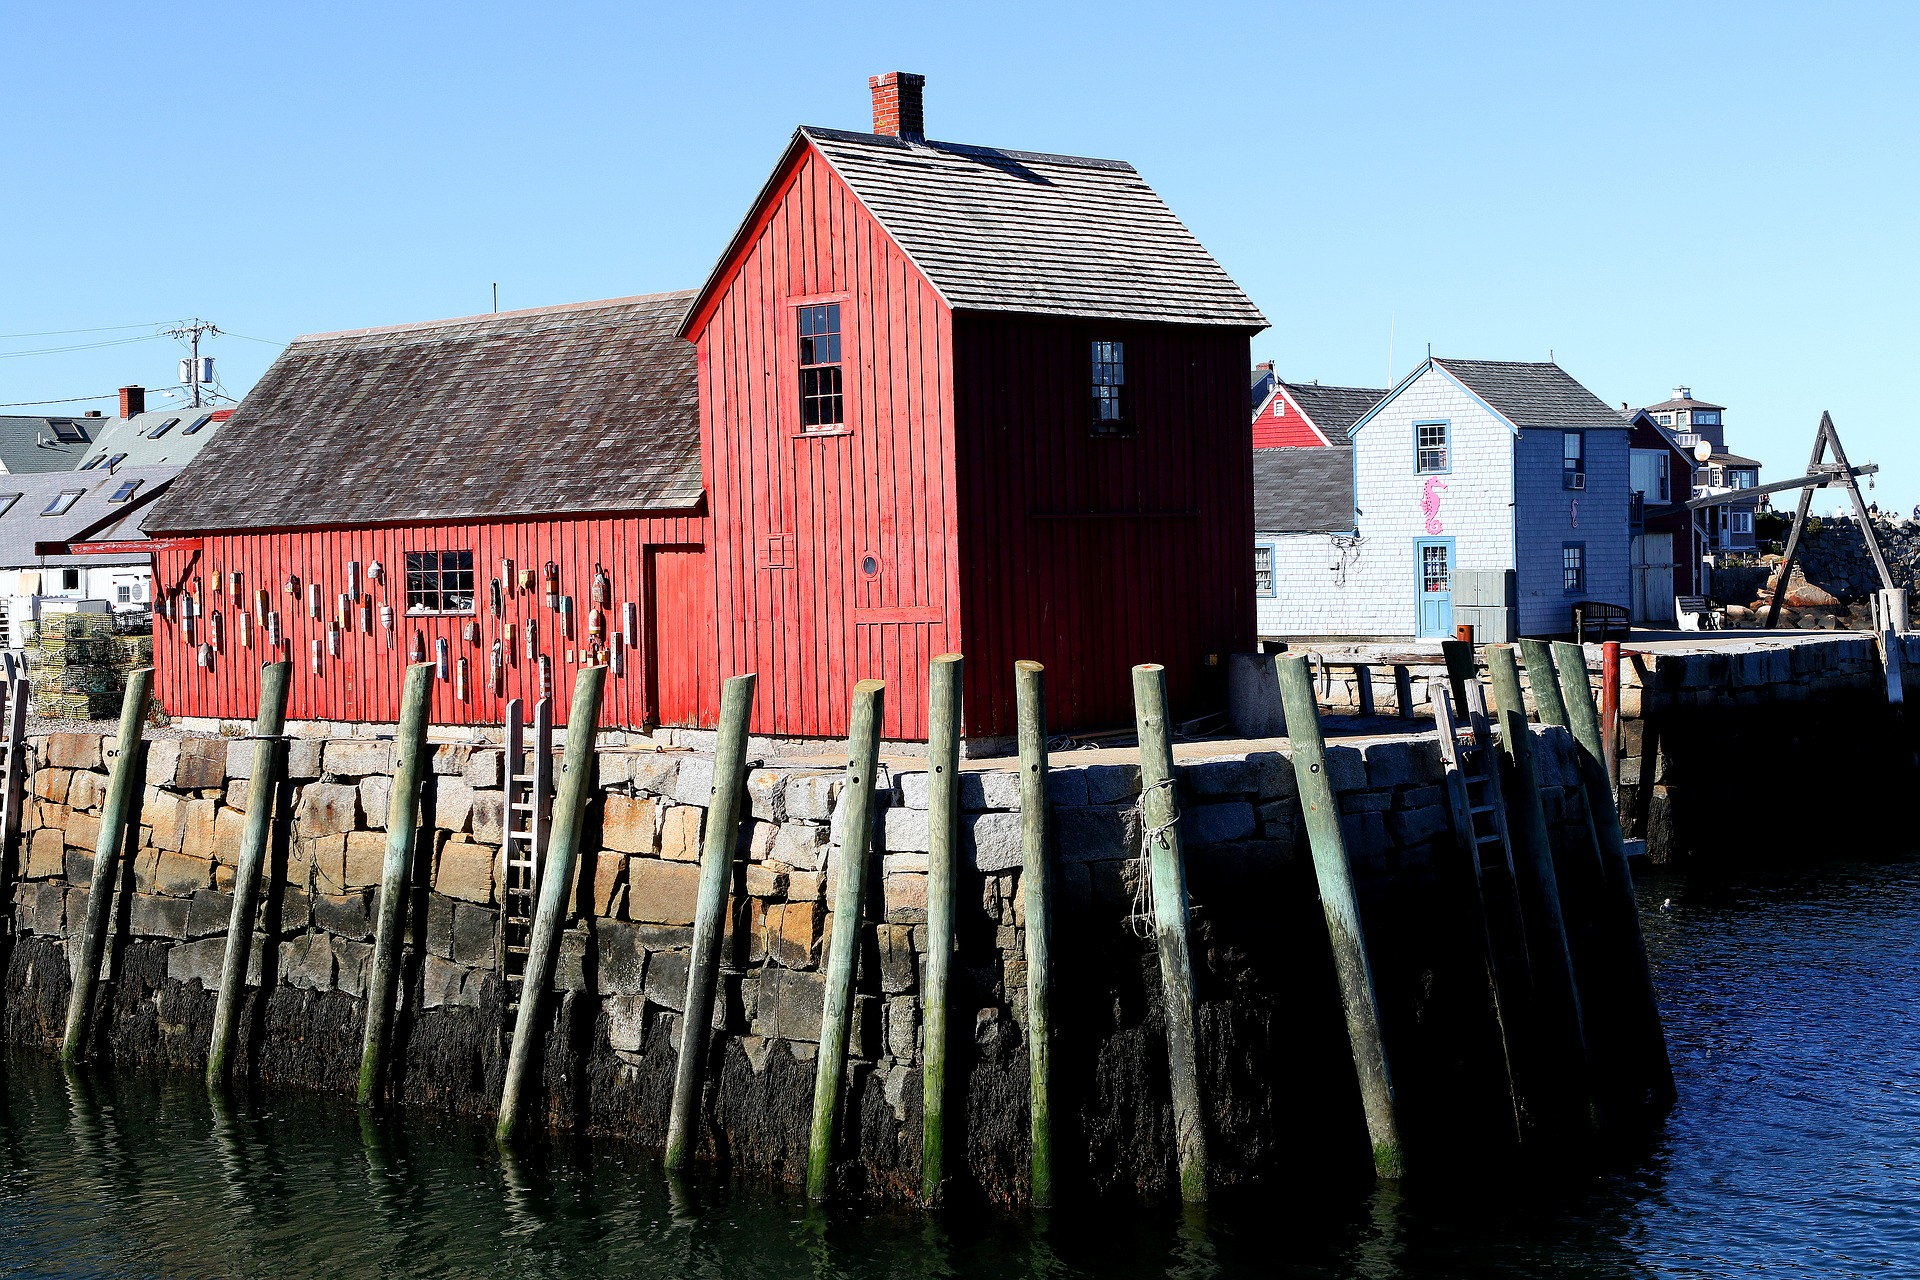 Barn on ocean representing the city of Rockport.